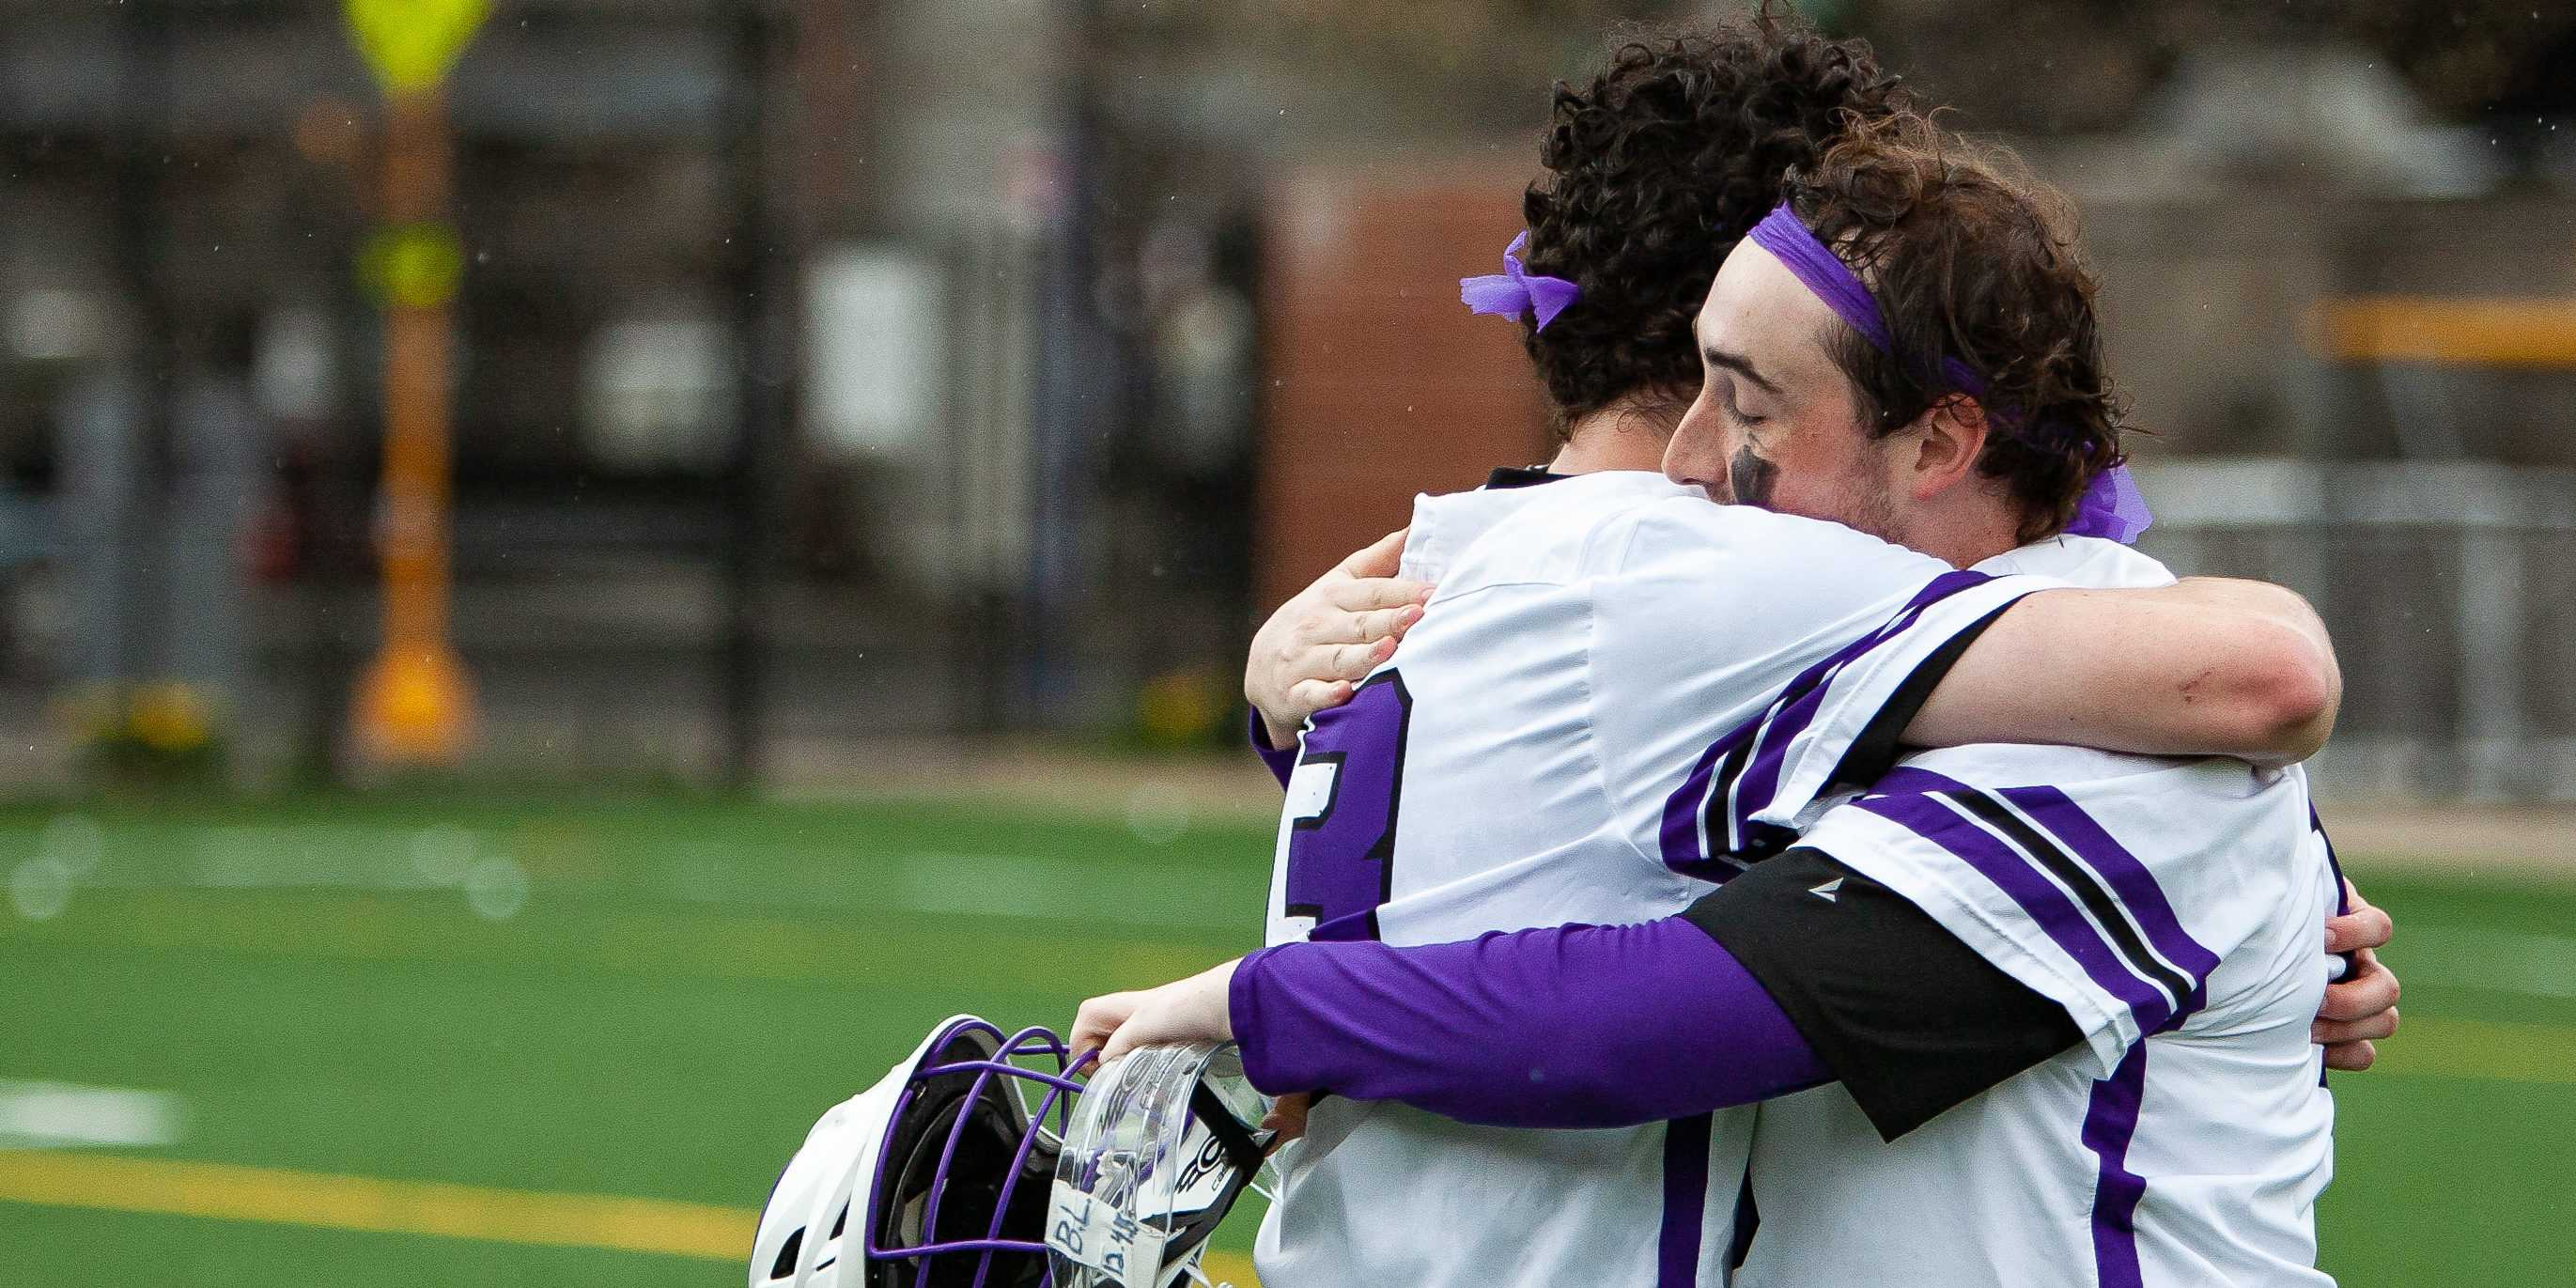 Freshman goalie Malcolm McGrath (left) hugs senior goalie Bailey Kennedy (right) after the men's lacrosse team's first conference win since 2013. Photo courtesy of Kate Foultz.